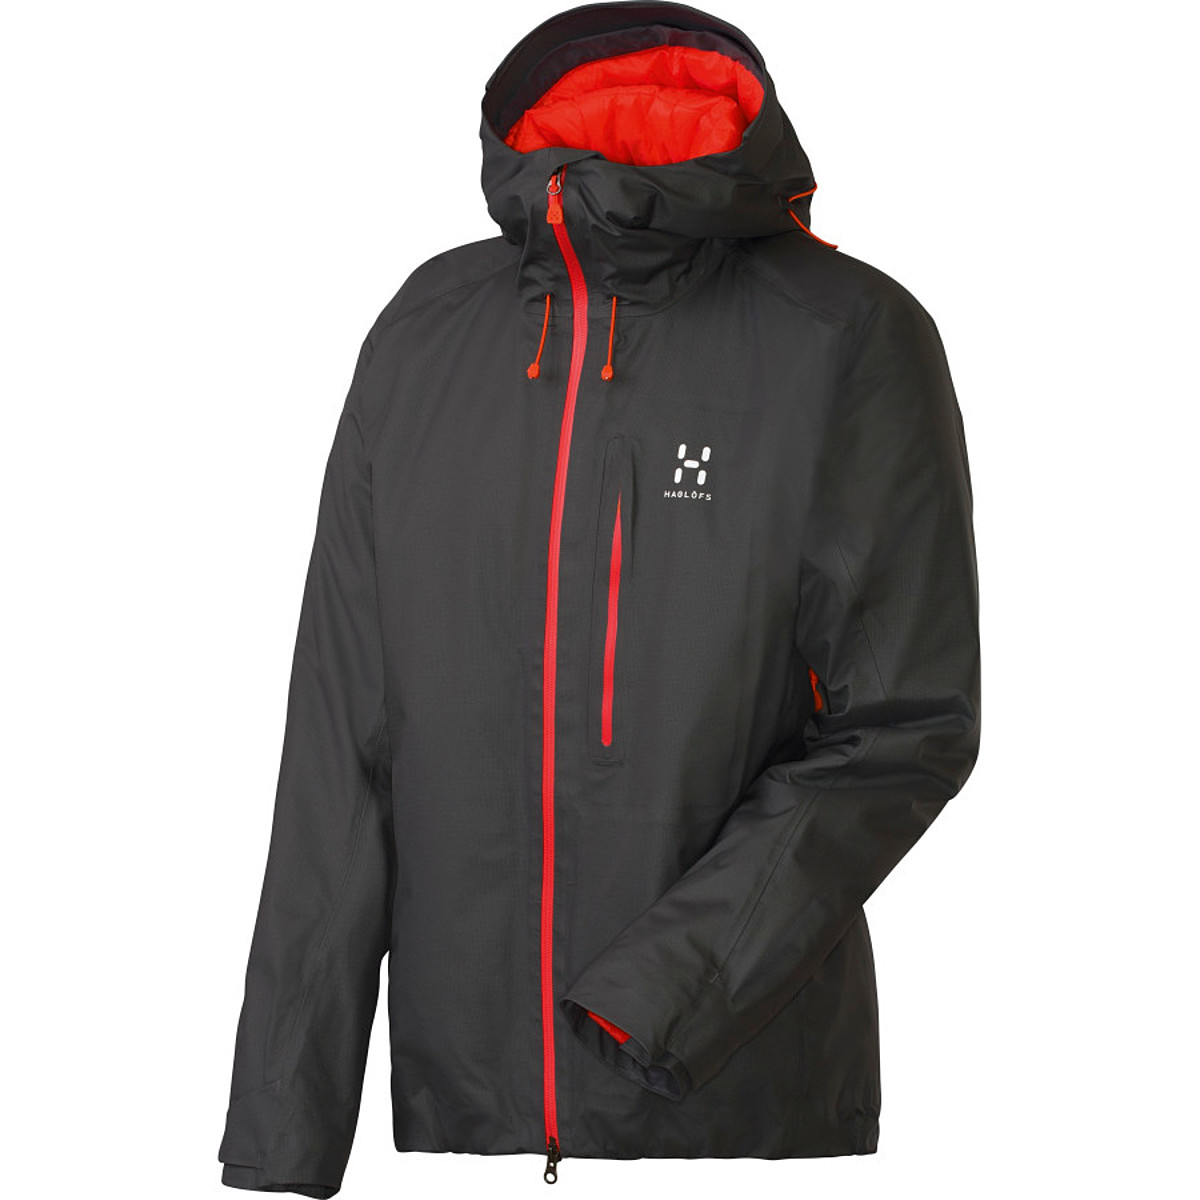 Haglofs Roc Ice Jacket